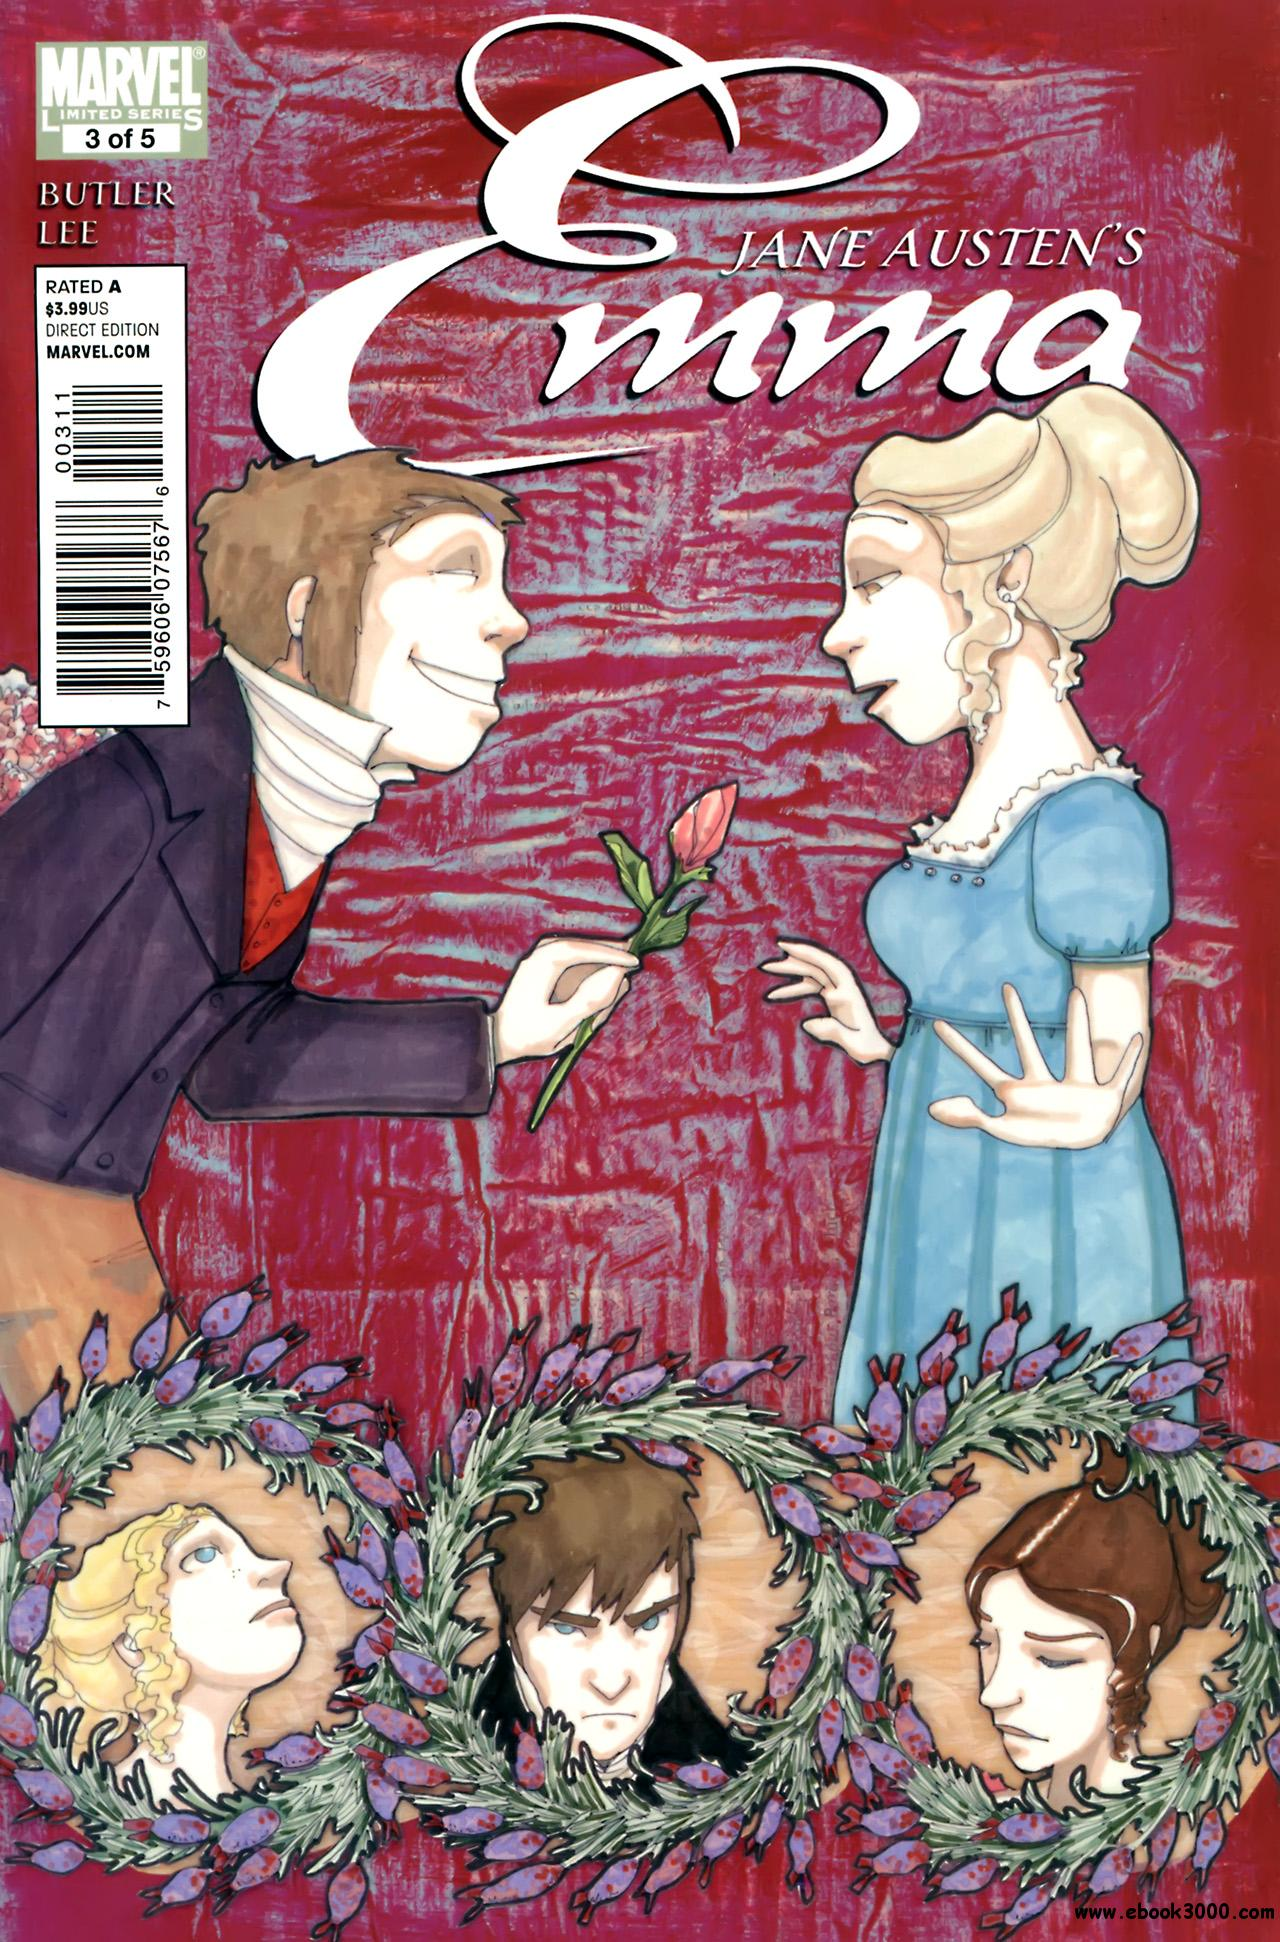 Emma #3 (of 05) (2011) free download